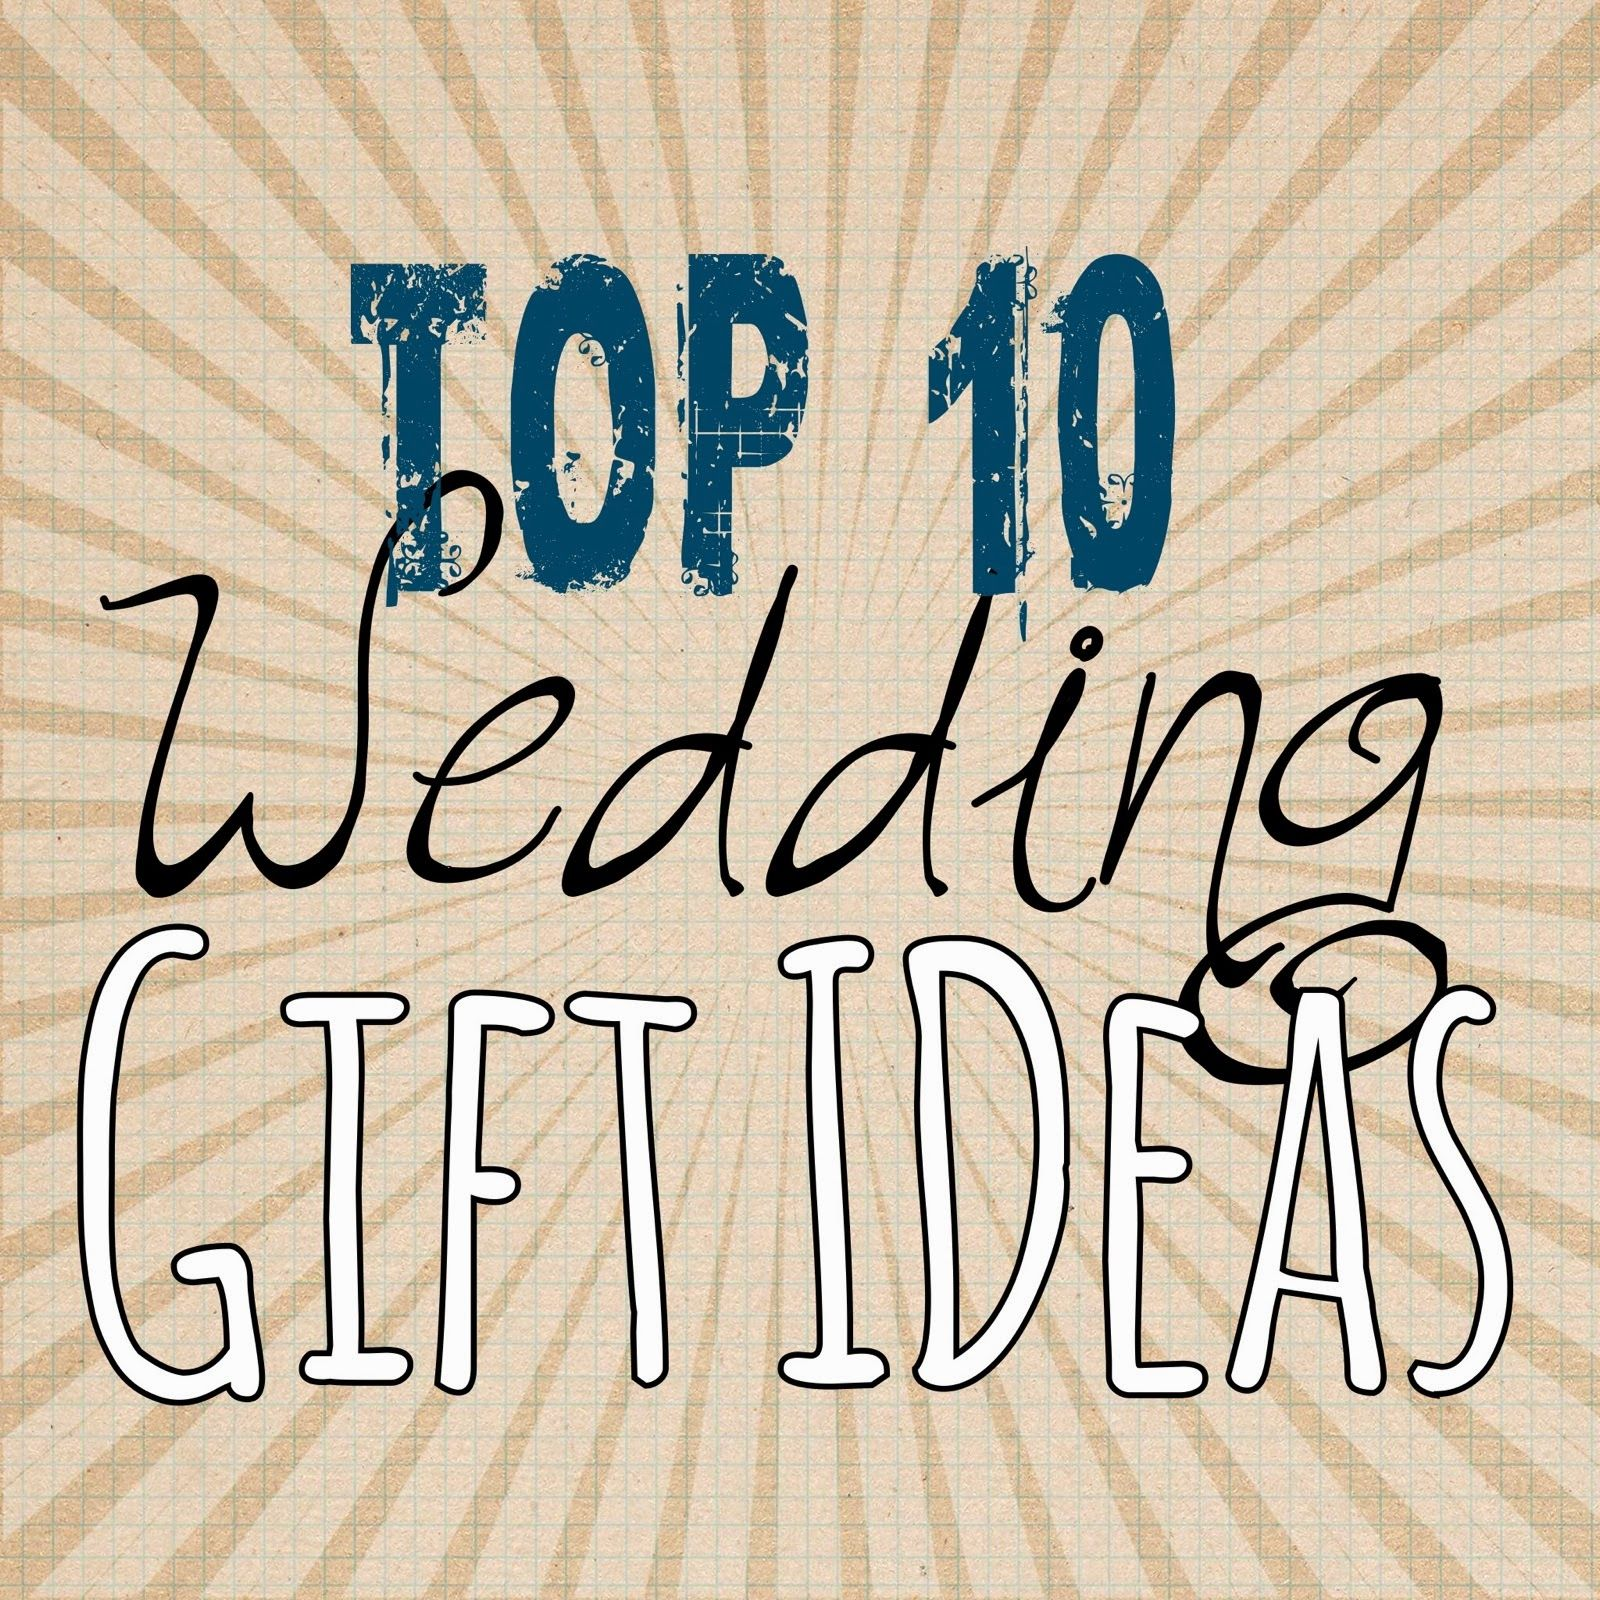 Wedding Gifts Ideas Regarding Interest Event Category For Gift Argos With Label